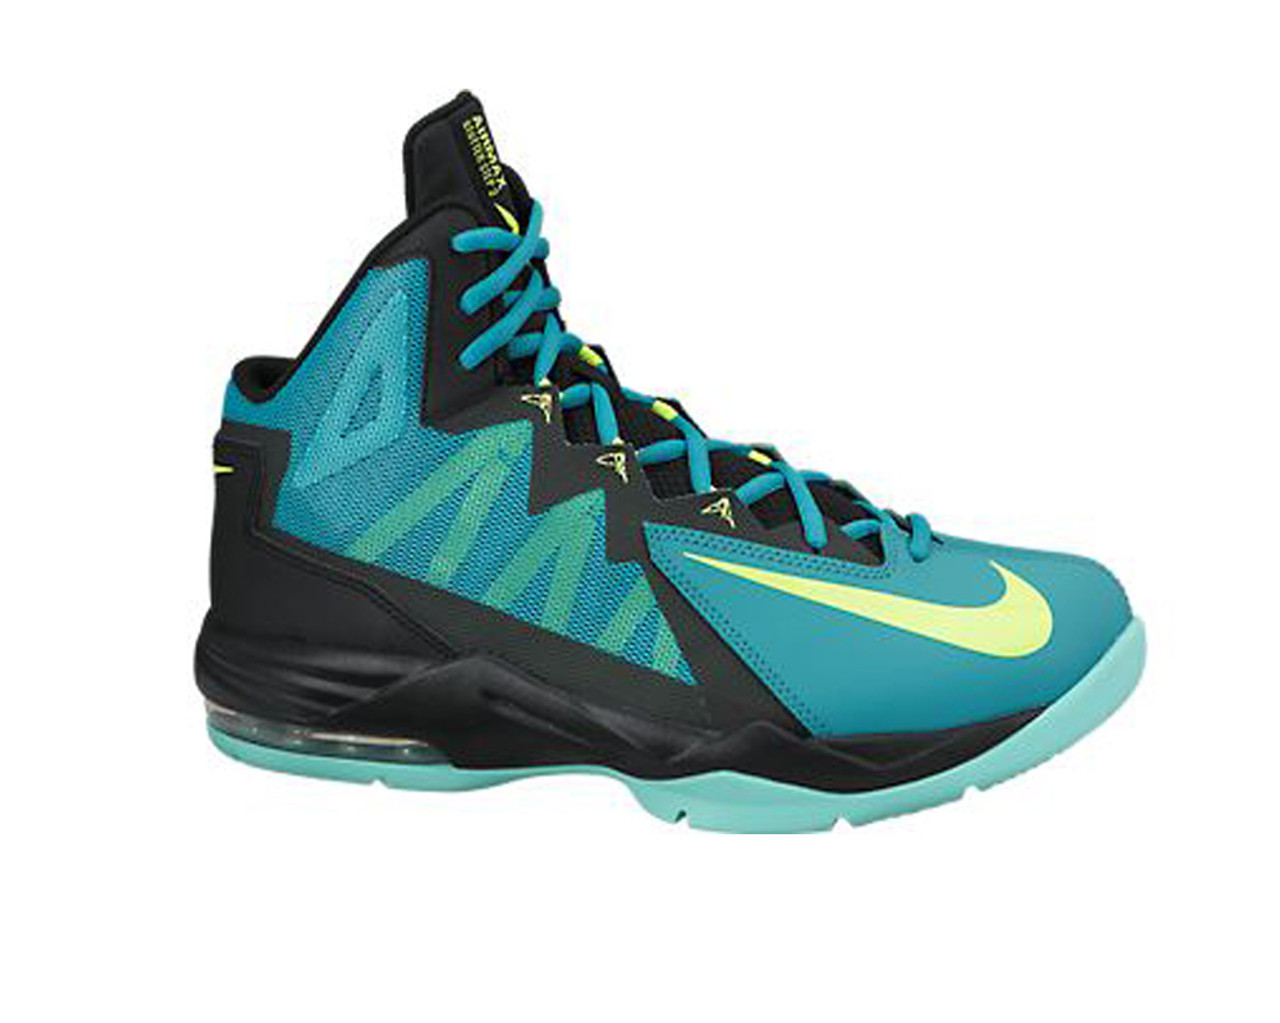 6fe0c70afccd Nike Men s Air Max Stutter Step 2 Basketball Shoes Catalina Turquoise -  Shop now